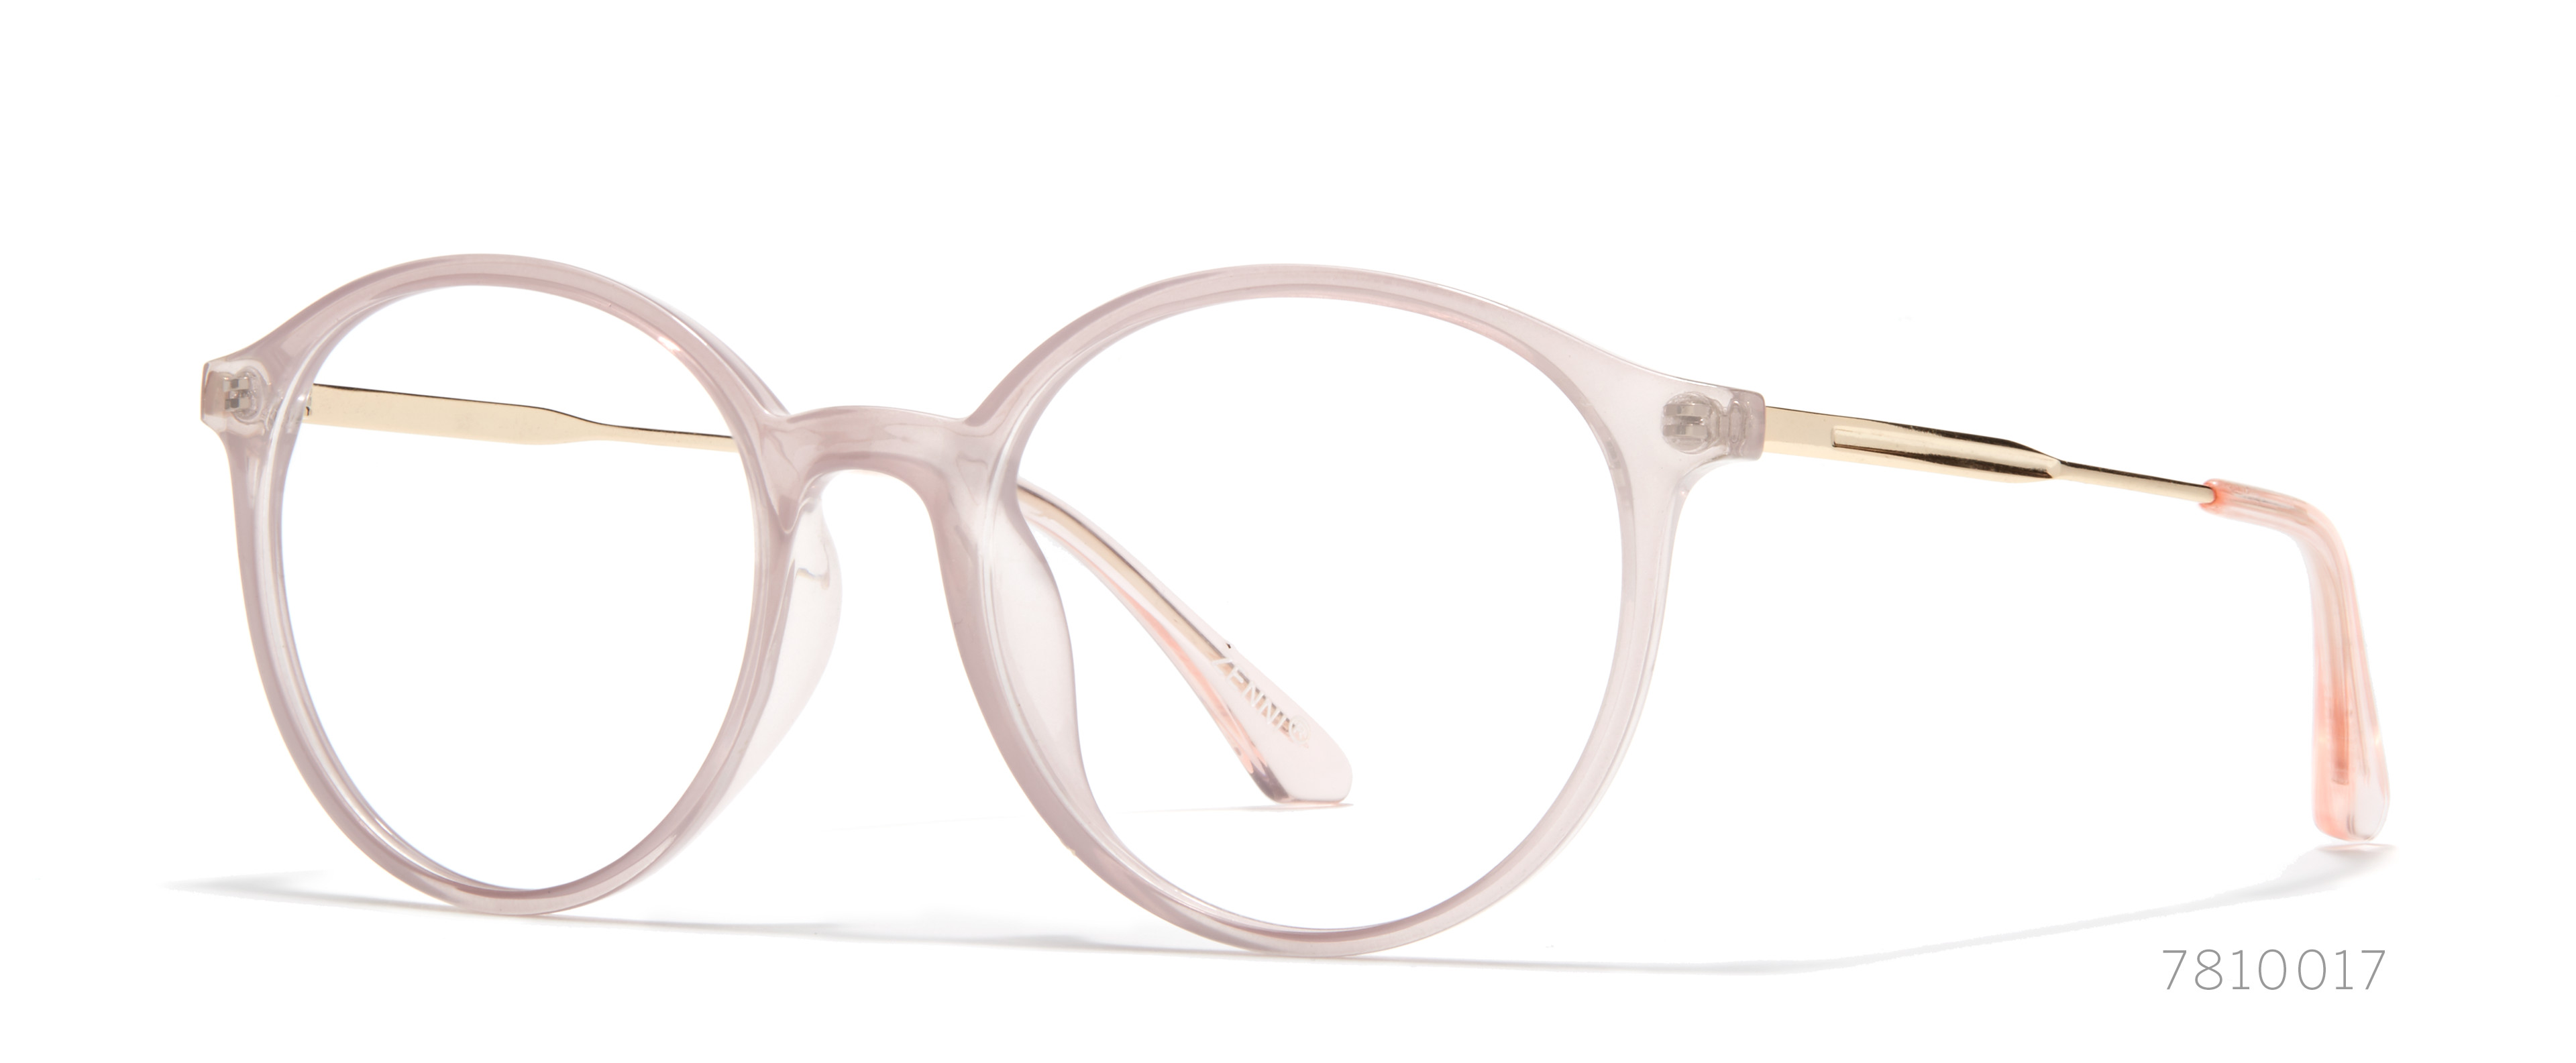 63a650a510 10 Glasses For Heart Shaped Faces